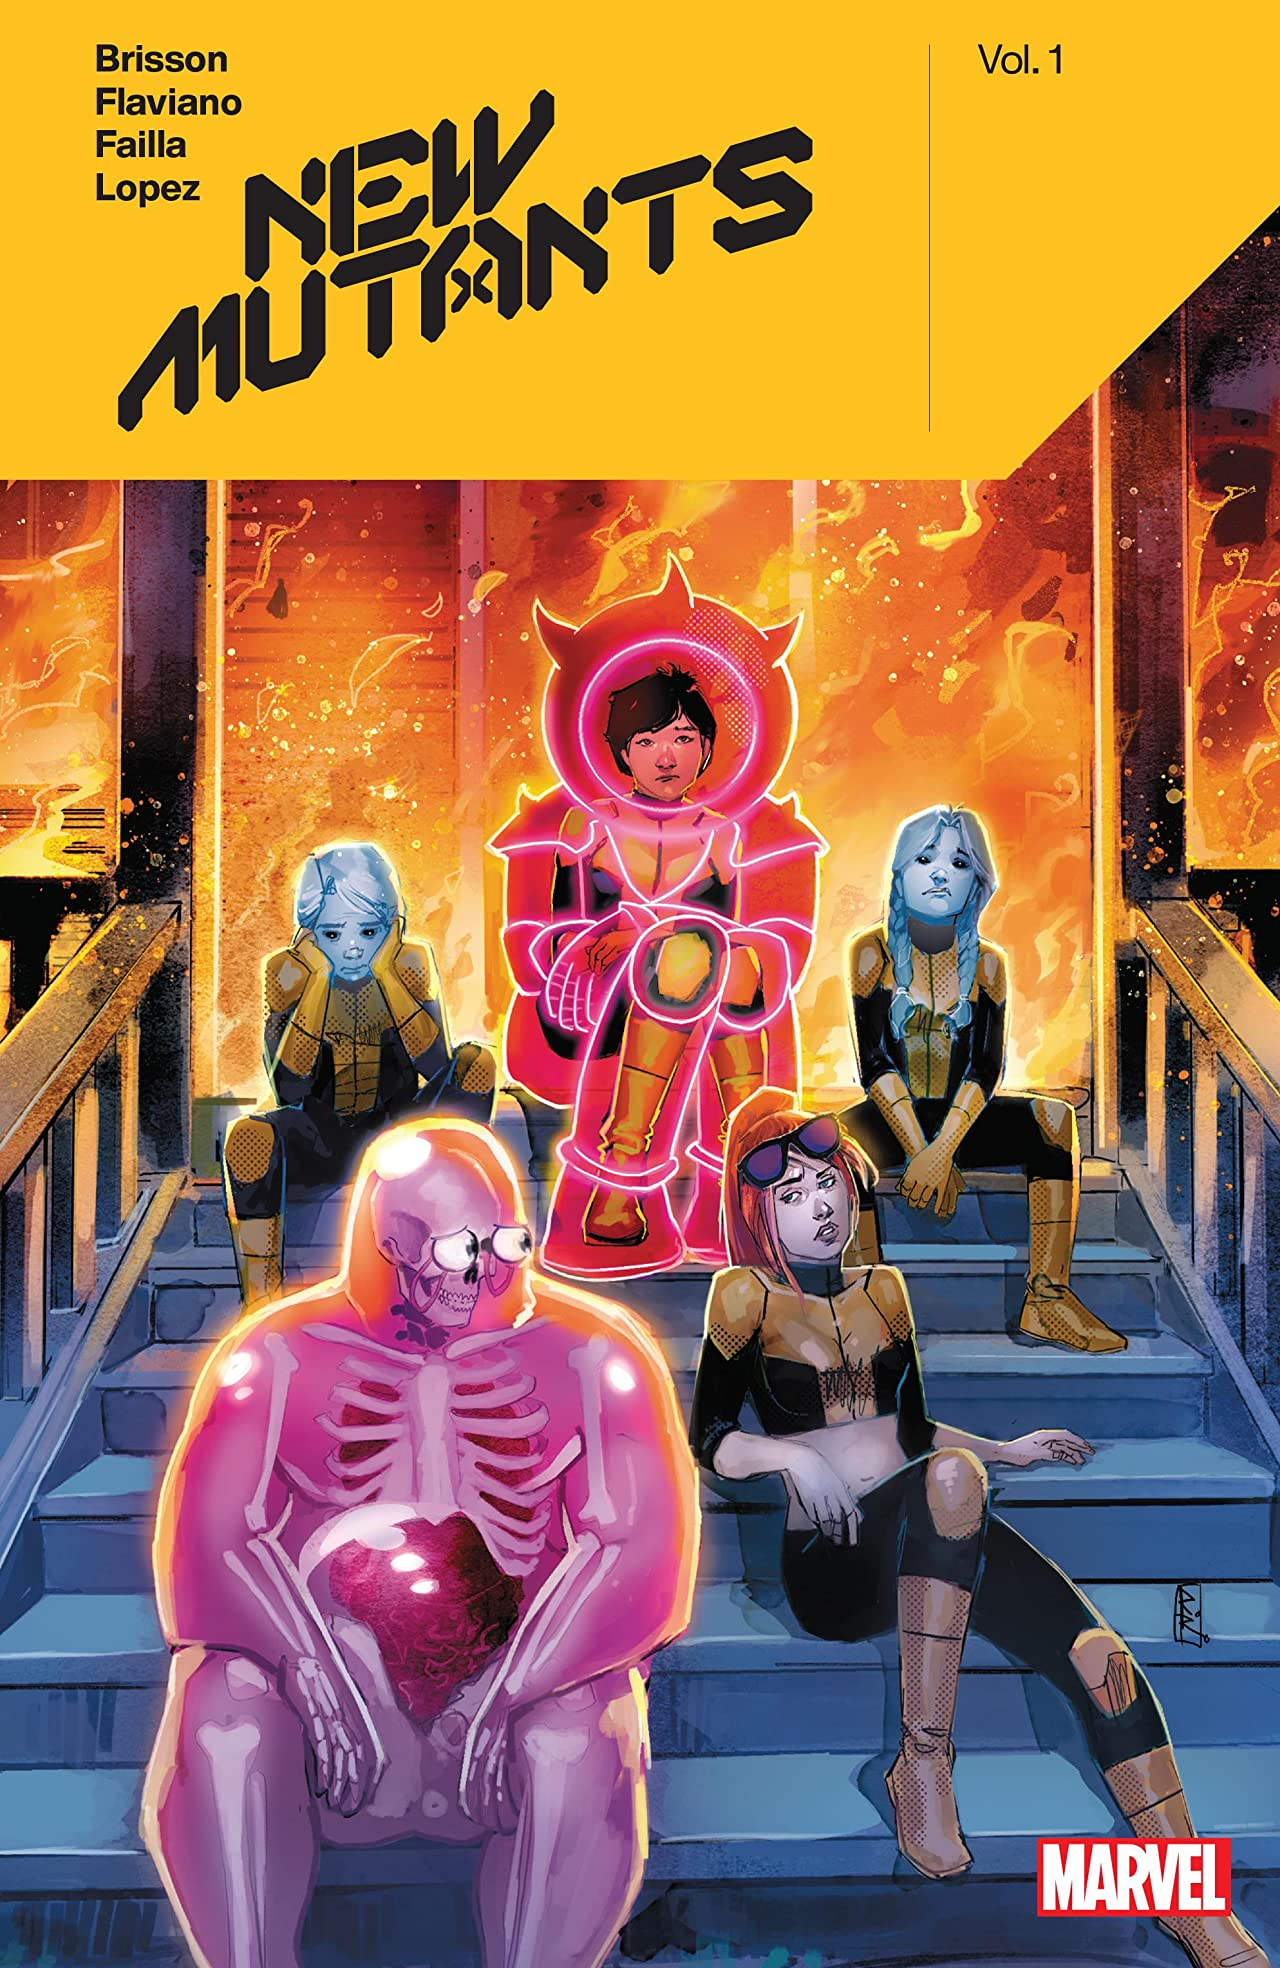 New Mutants by Ed Brisson Vol. 1 (Trade Paperback)